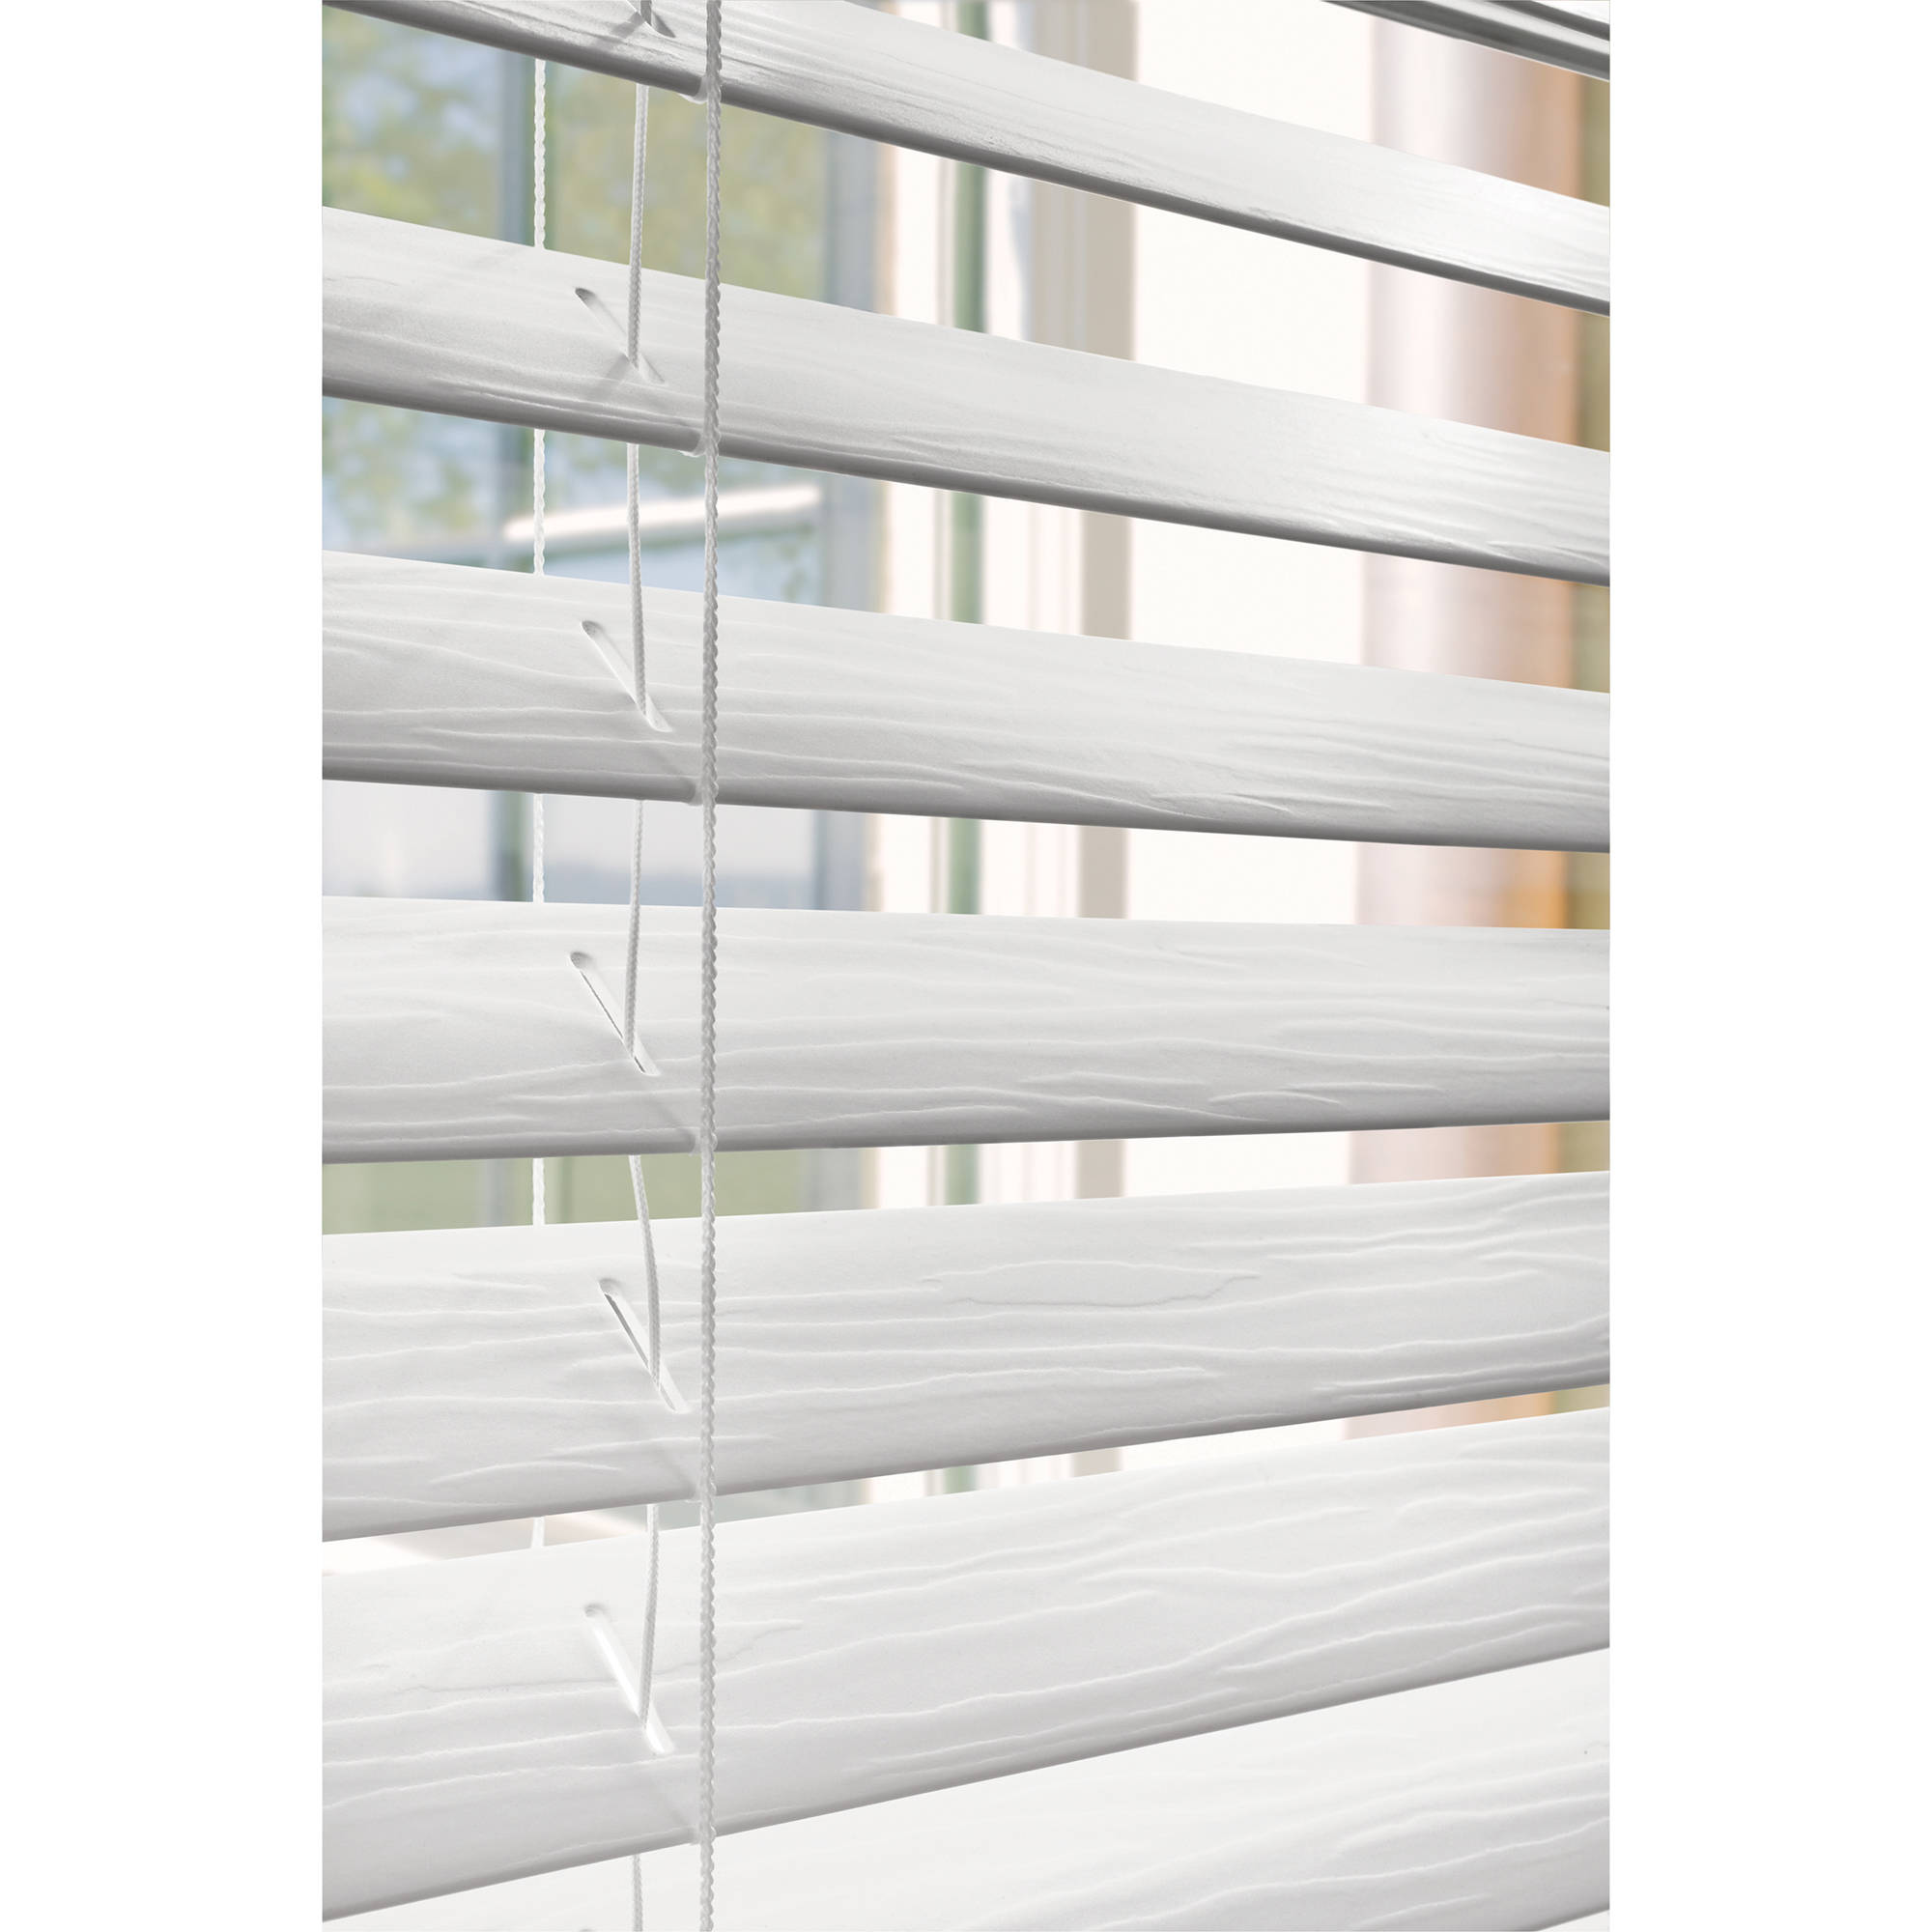 Faux Horizontal Window Wood Blinds Home Furniture Decorators White 2 Inch New Ebay